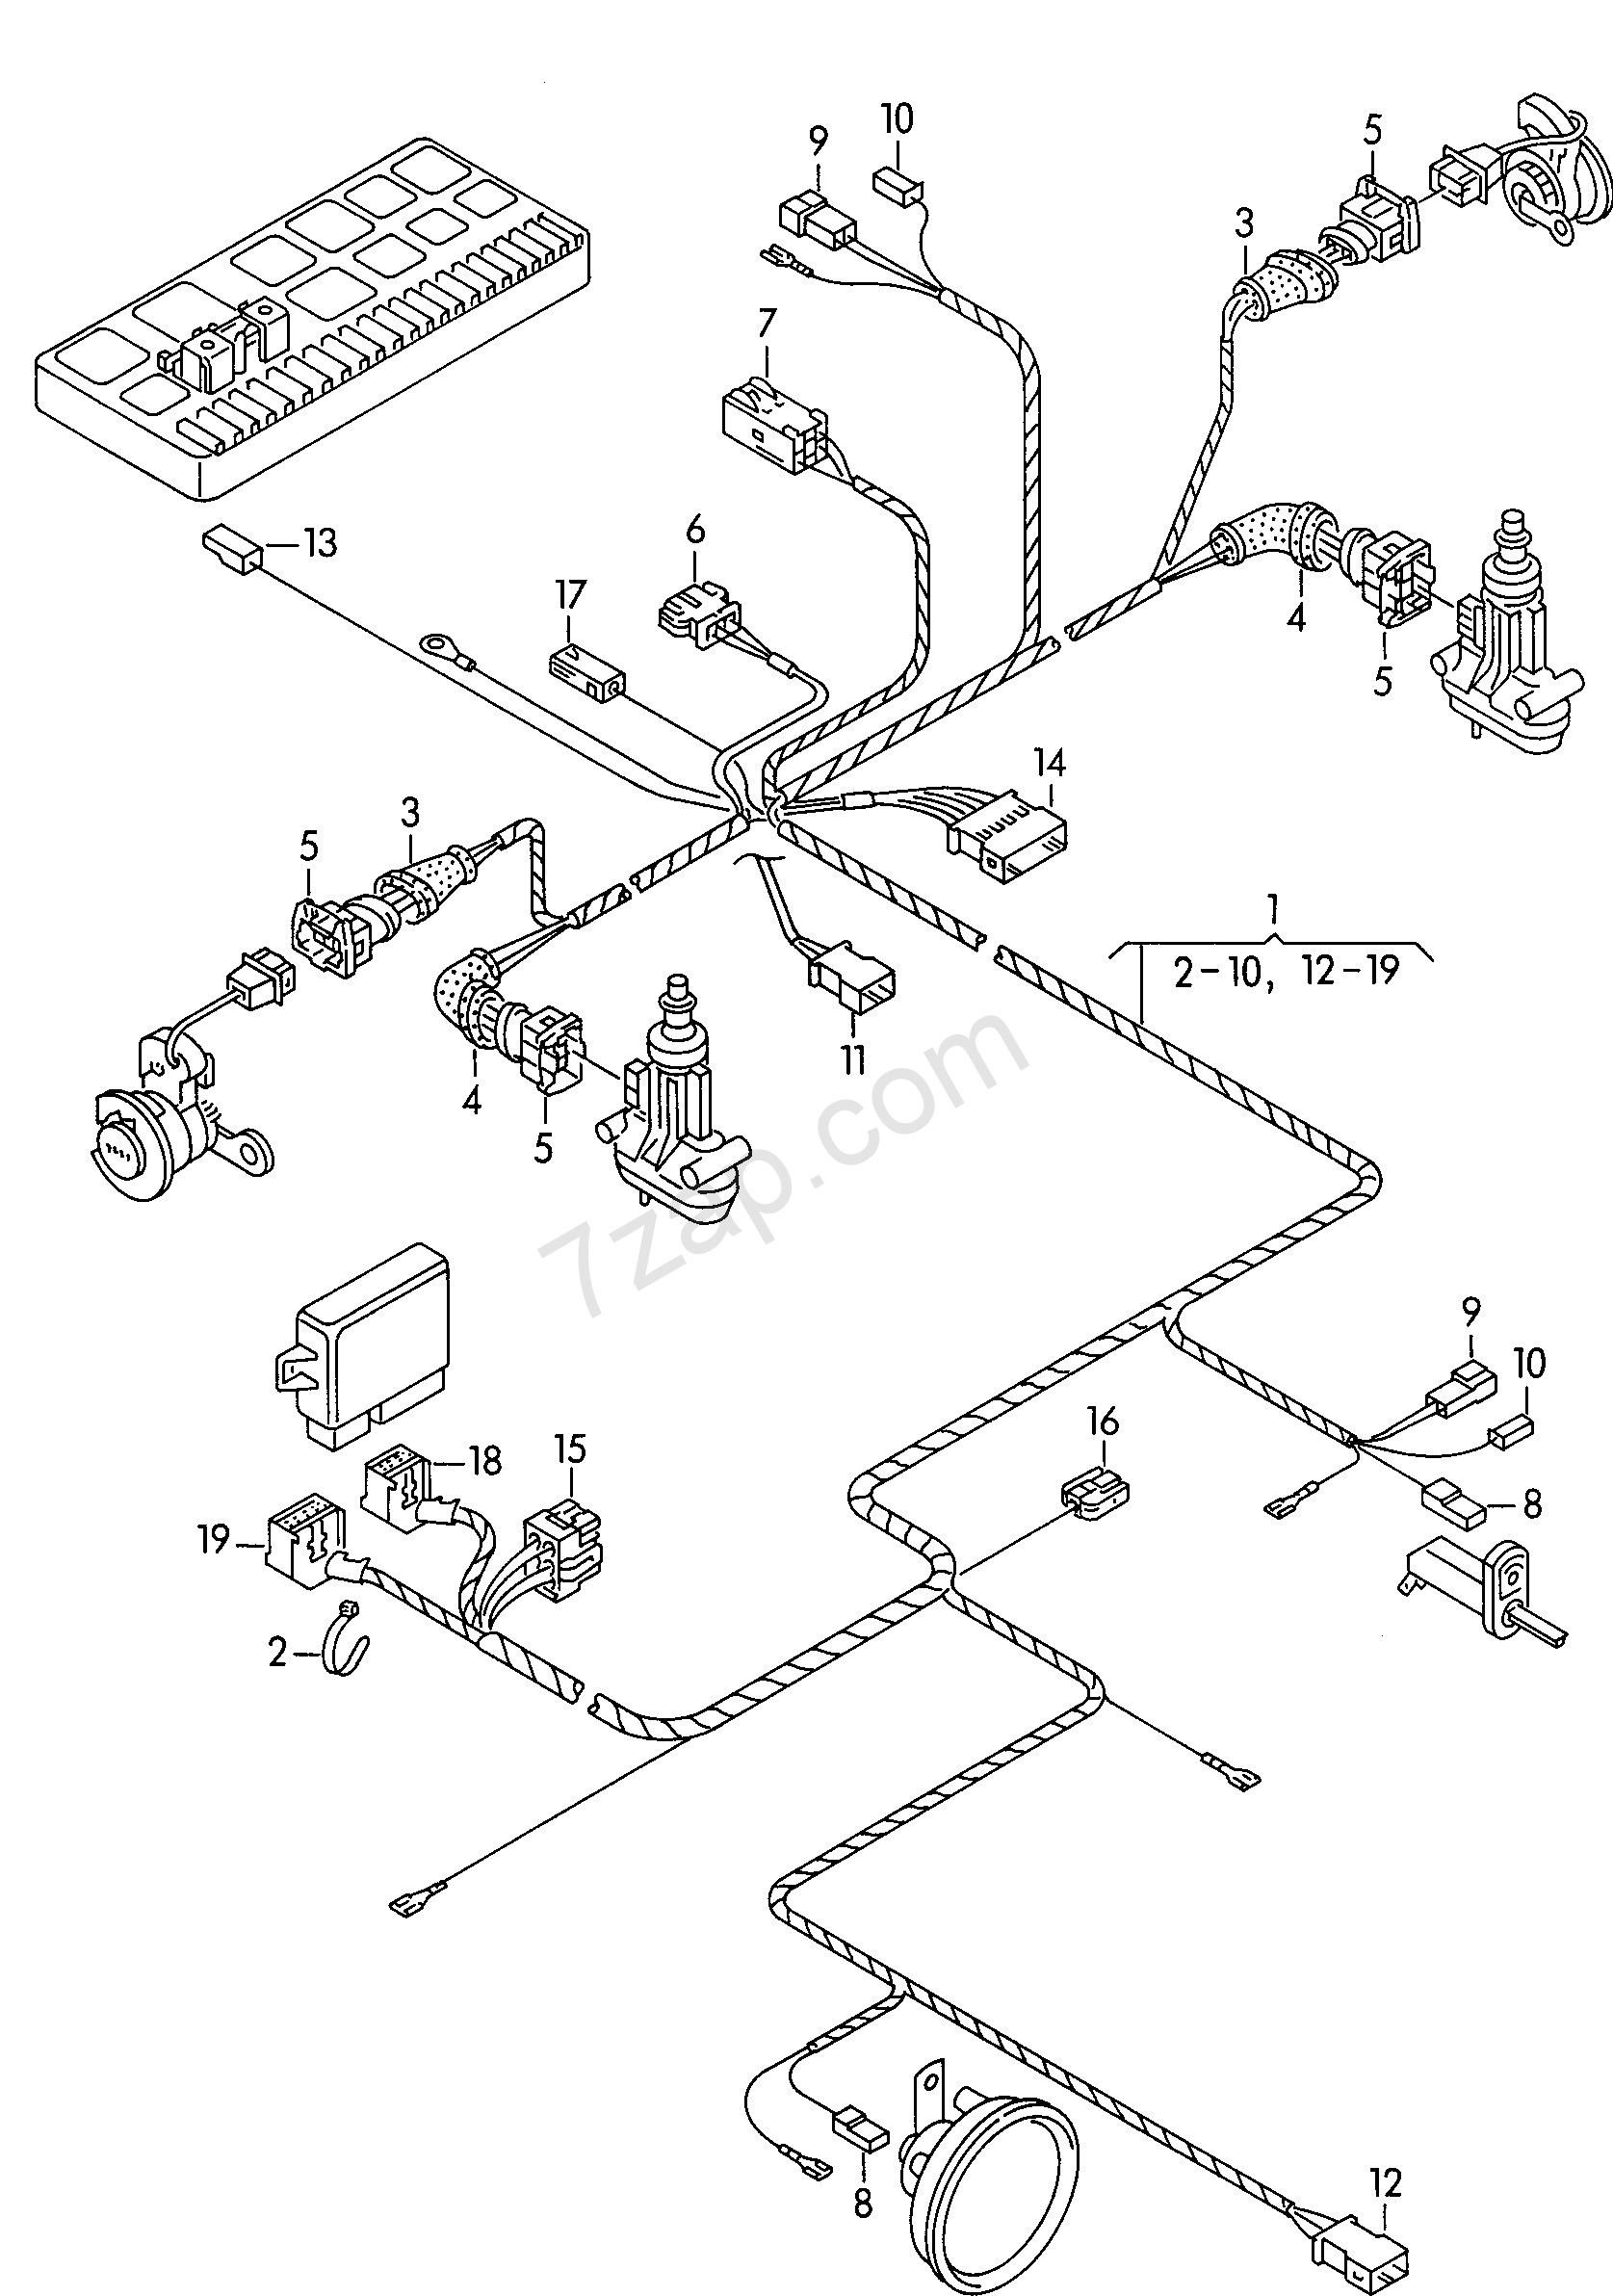 wiring diagram for 91 crown vic